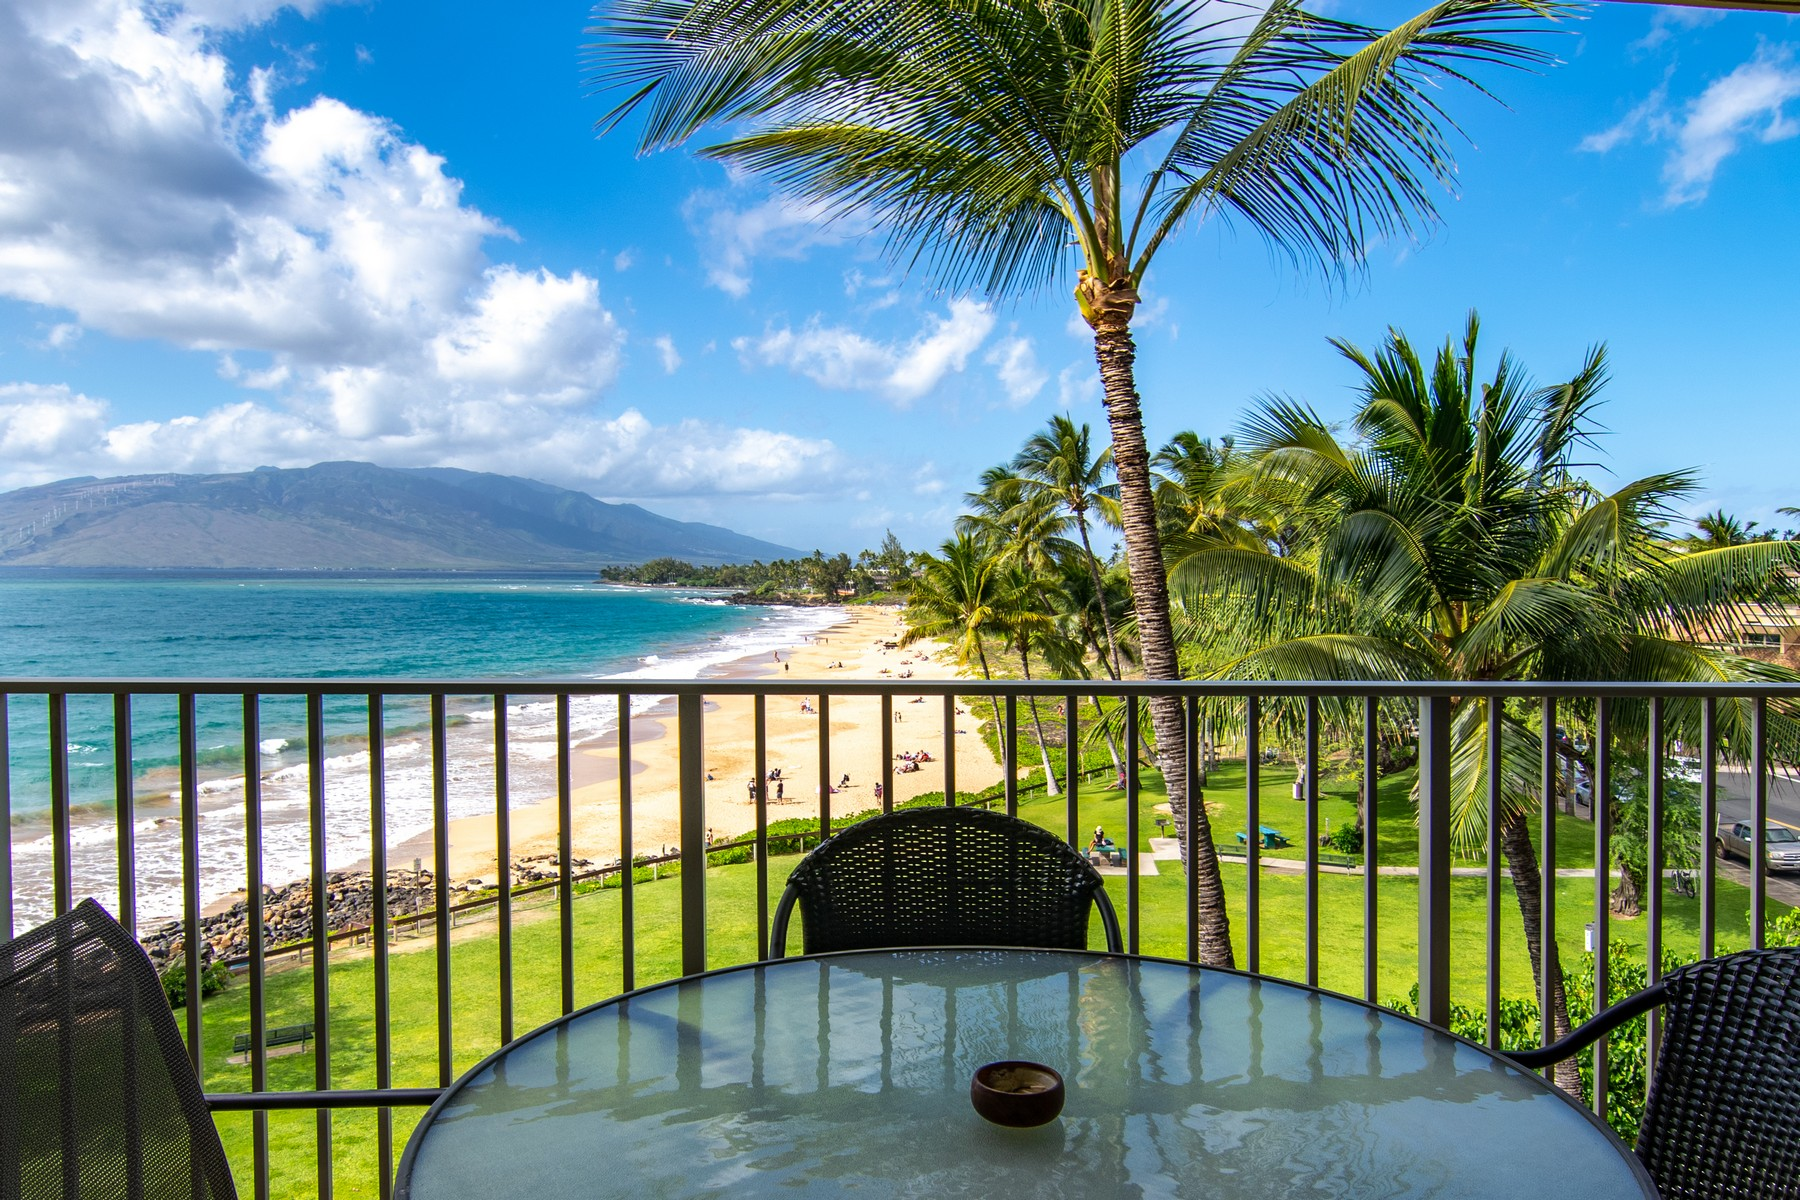 Condominium for Active at Rare Beachfront Opportunity in South Maui 2430 S. Kihei Road, Royal Mauian #503 Kihei, Hawaii 96753 United States